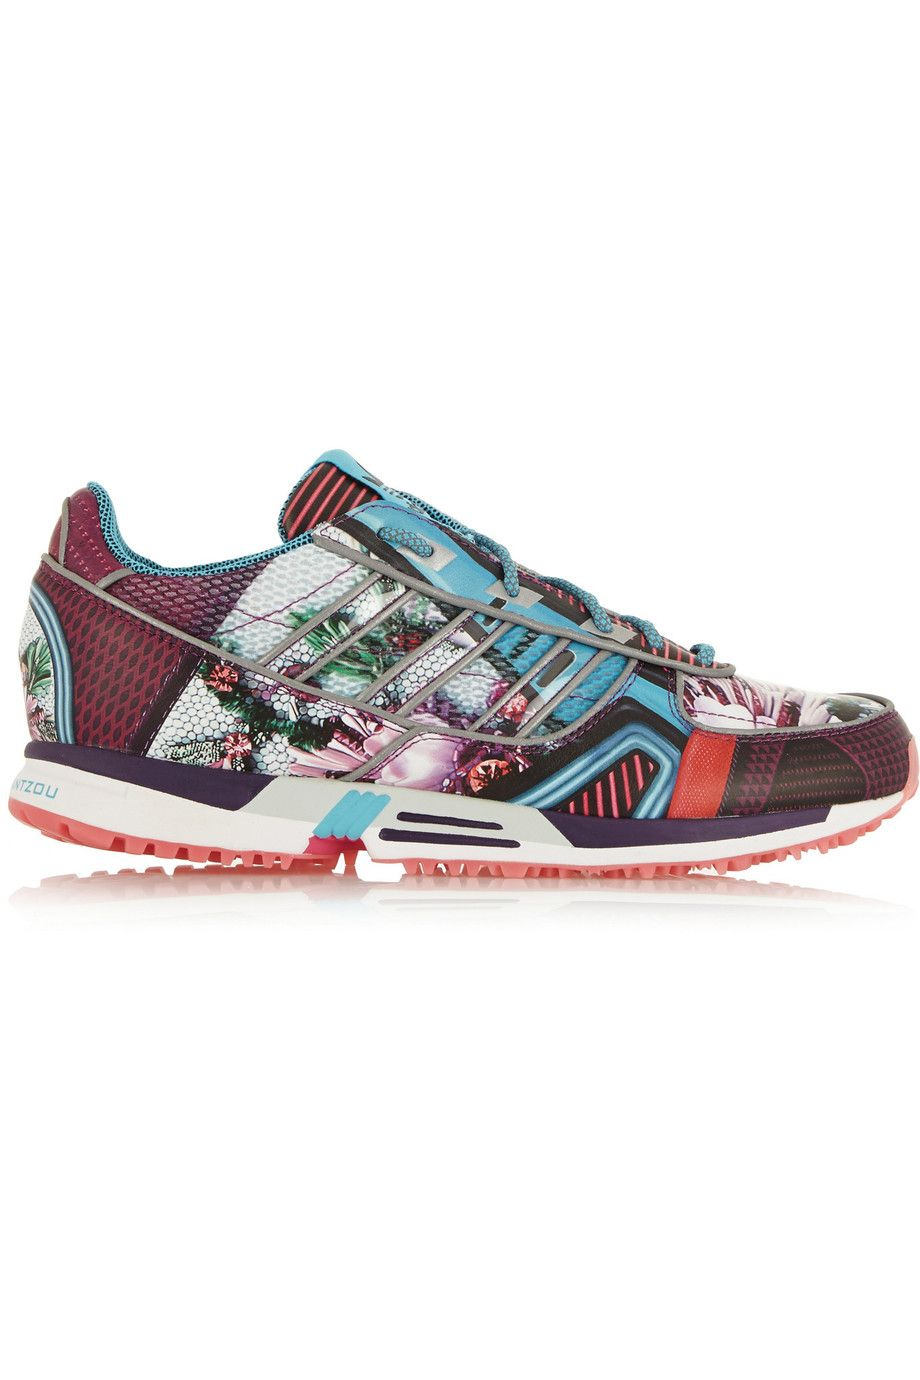 ADIDAS ORIGINALS + Mary Katrantzou Track Zx 5000 Scuba-Jersey Sneakers. # adidasoriginals #